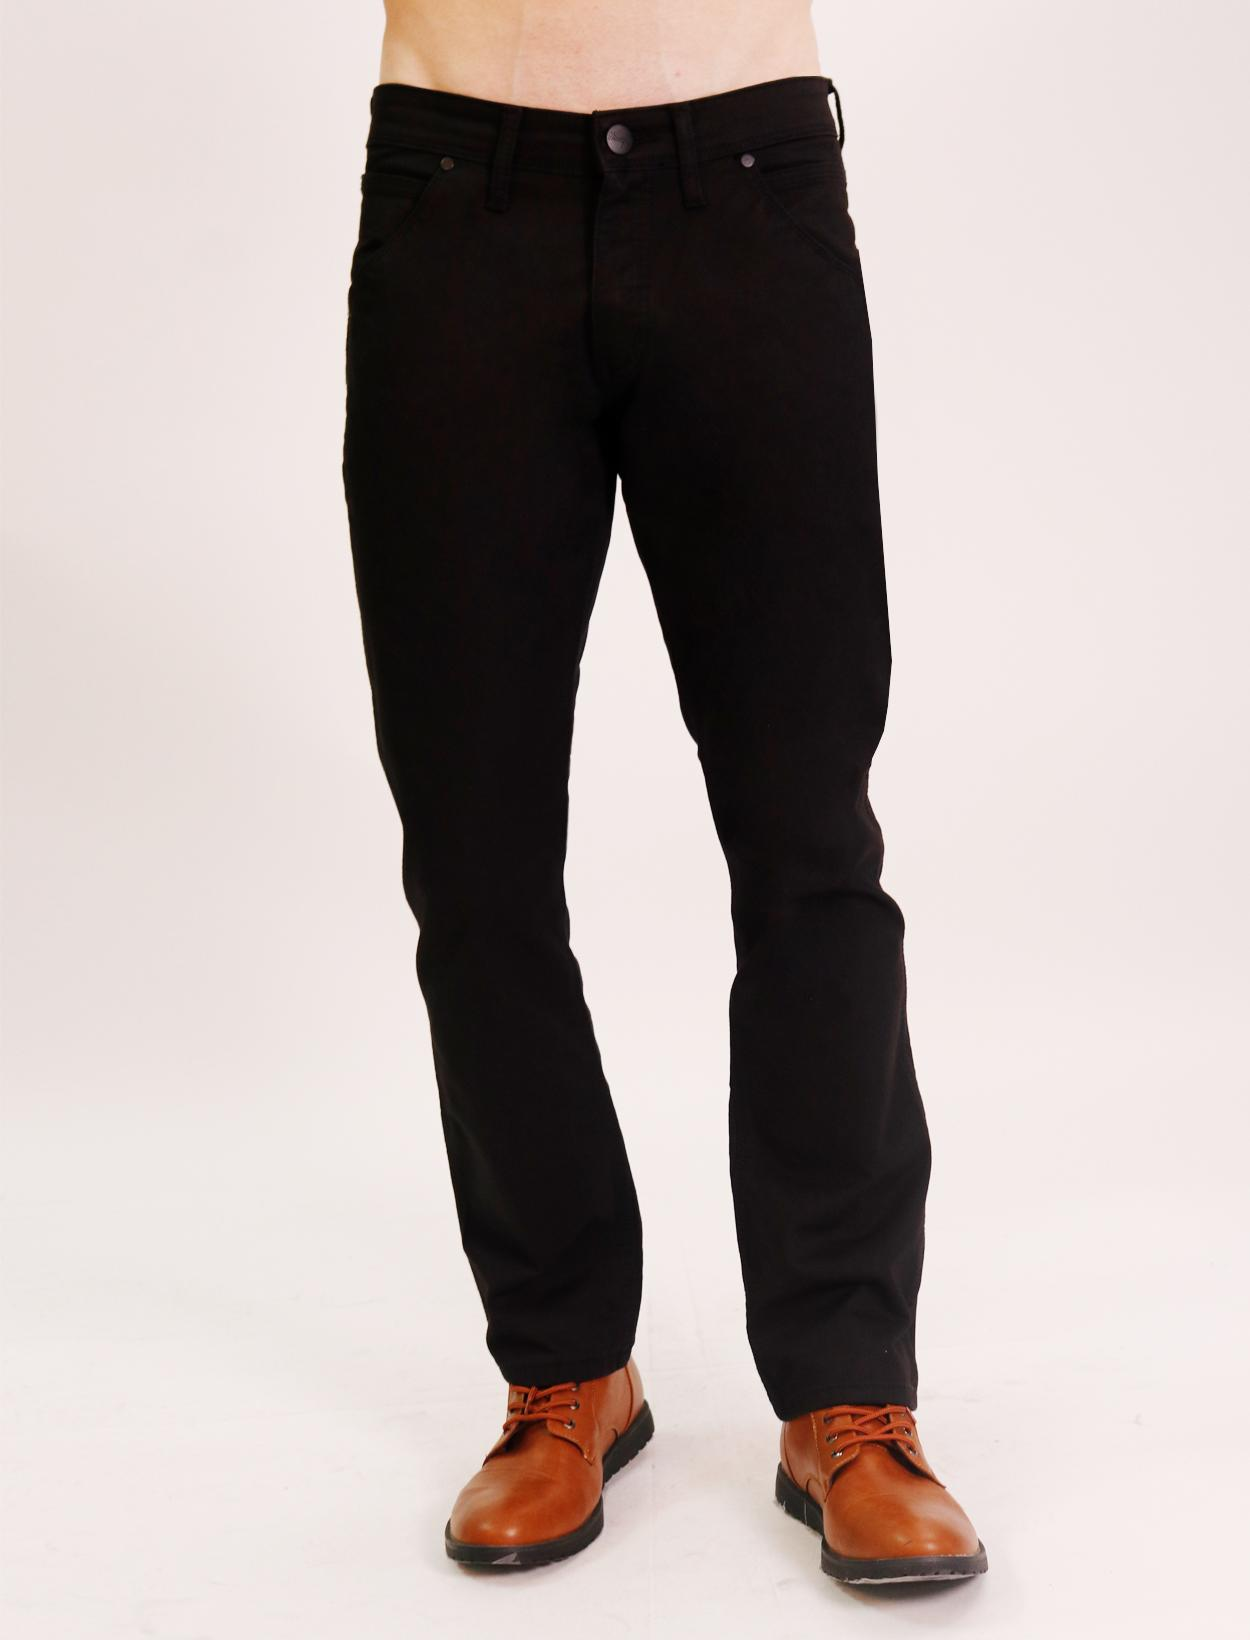 09885c68b58 Wrangler Spencer Low Waist Slim Straight Five Pocket Jeans with Bedford  Stretch Fabric in Black